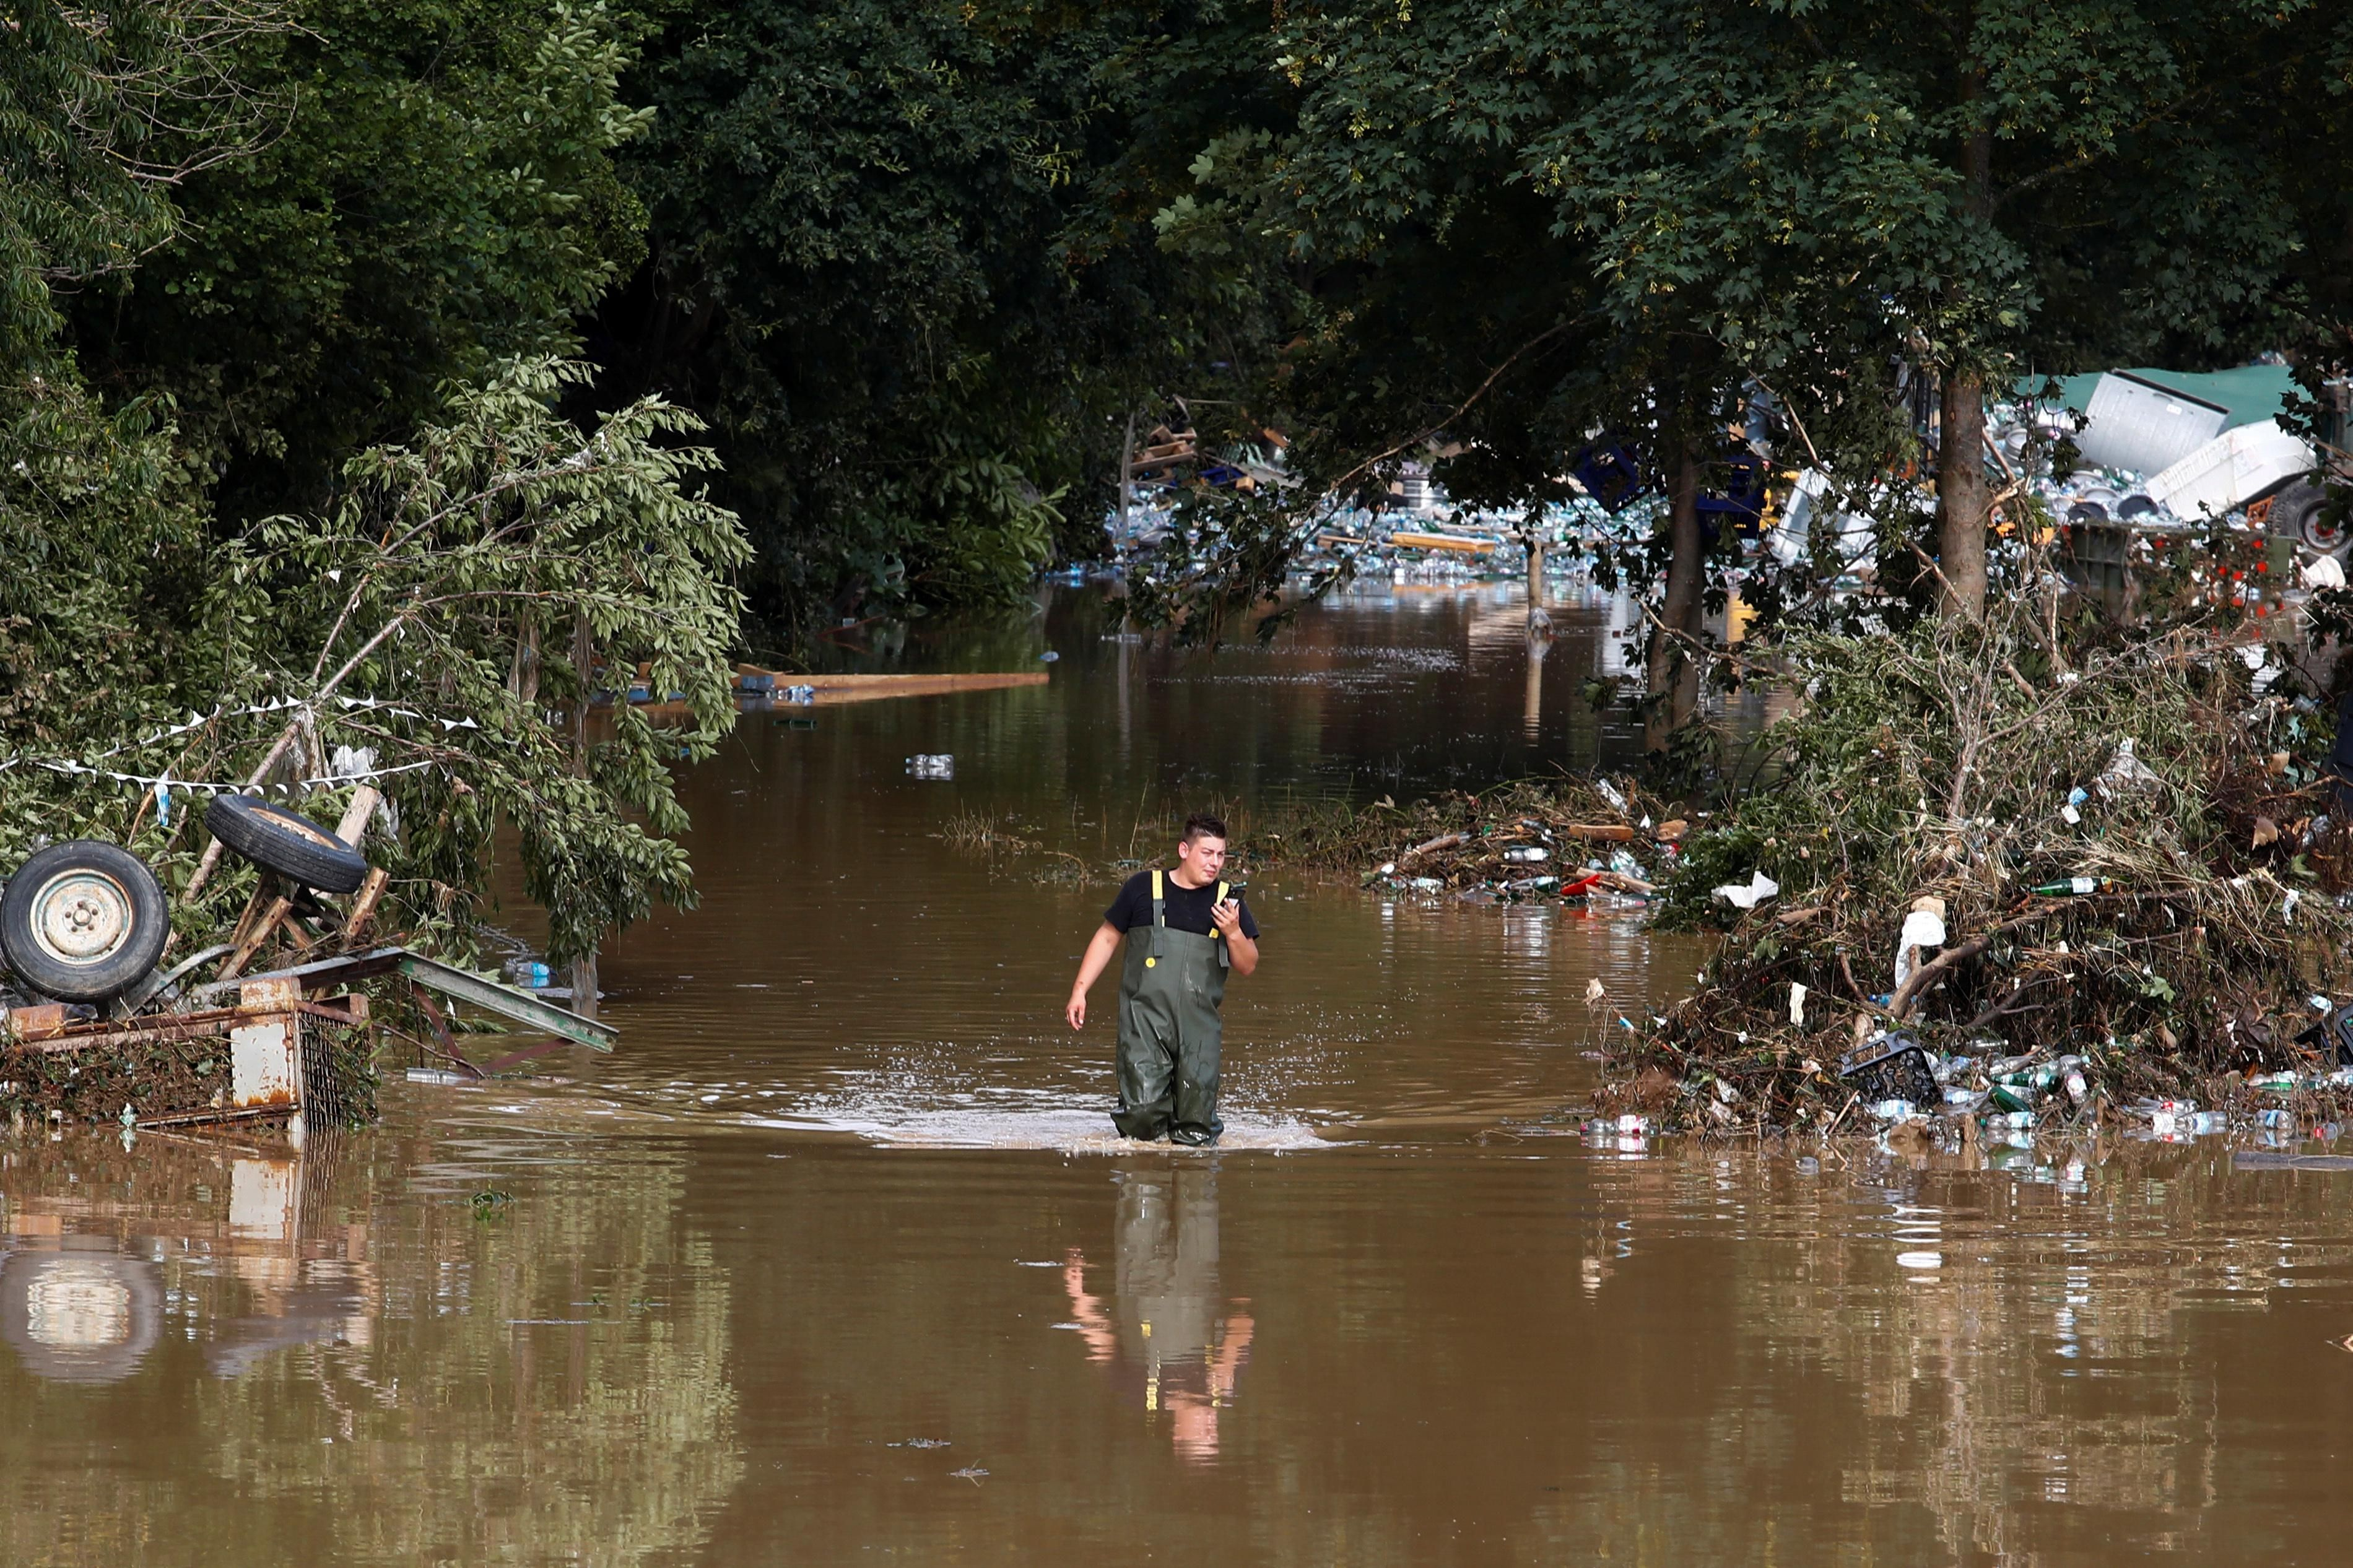 A man walks through the water in an area affected by floods following heavy rainfalls in Bad Neuenahr-Ahrweiler, Germany, July 15, 2021